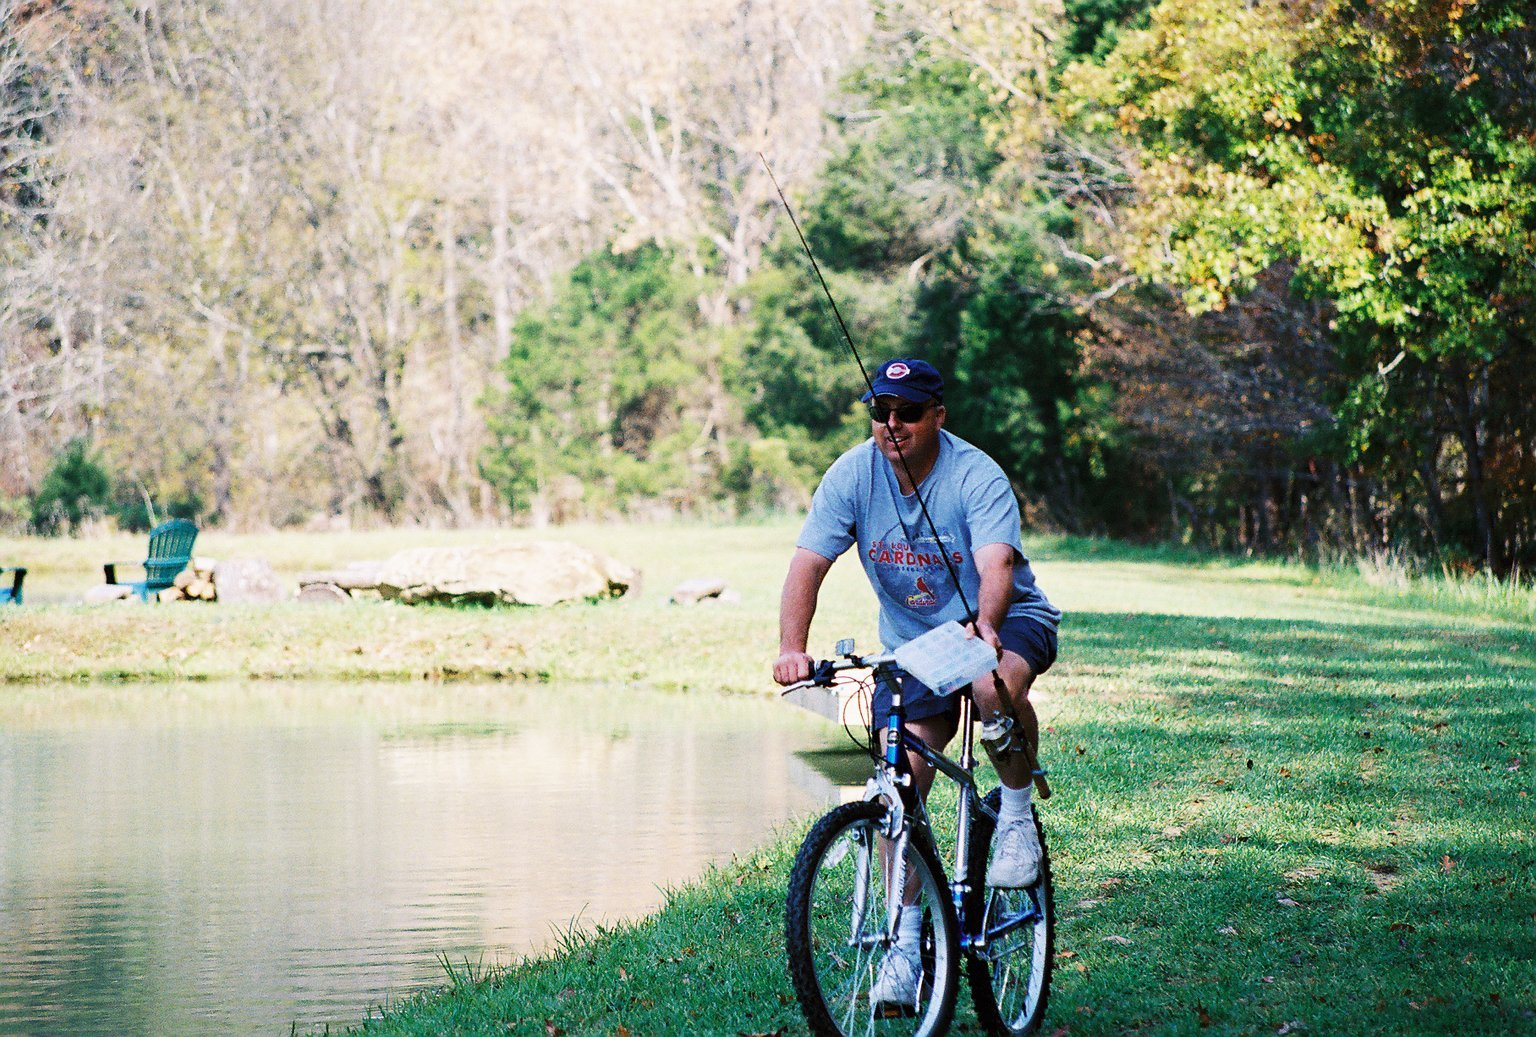 biking around lake at Tennessee lake